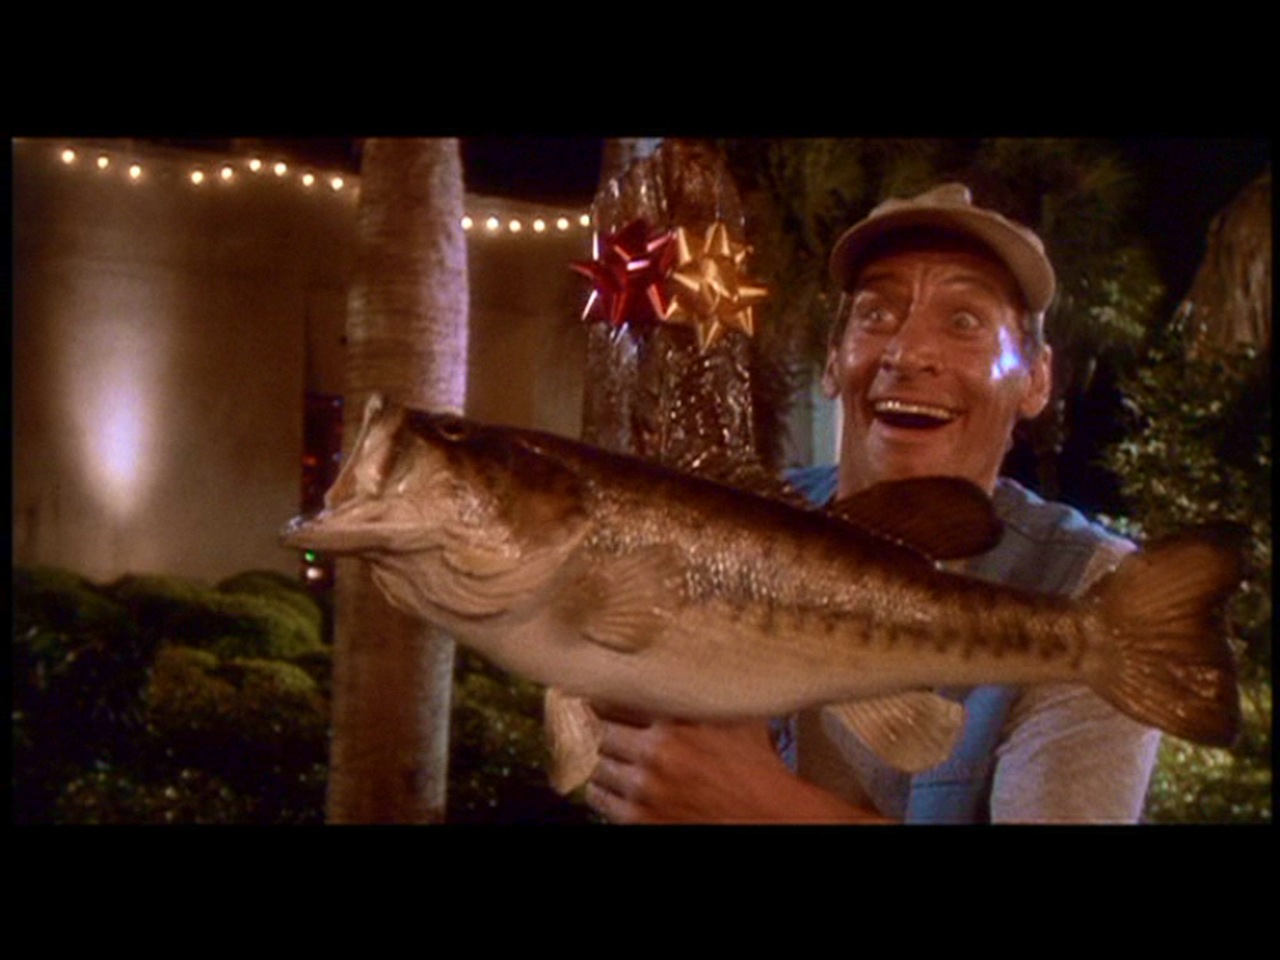 Shameless Pile of Stuff: Movie Review: Ernest Saves Christmas